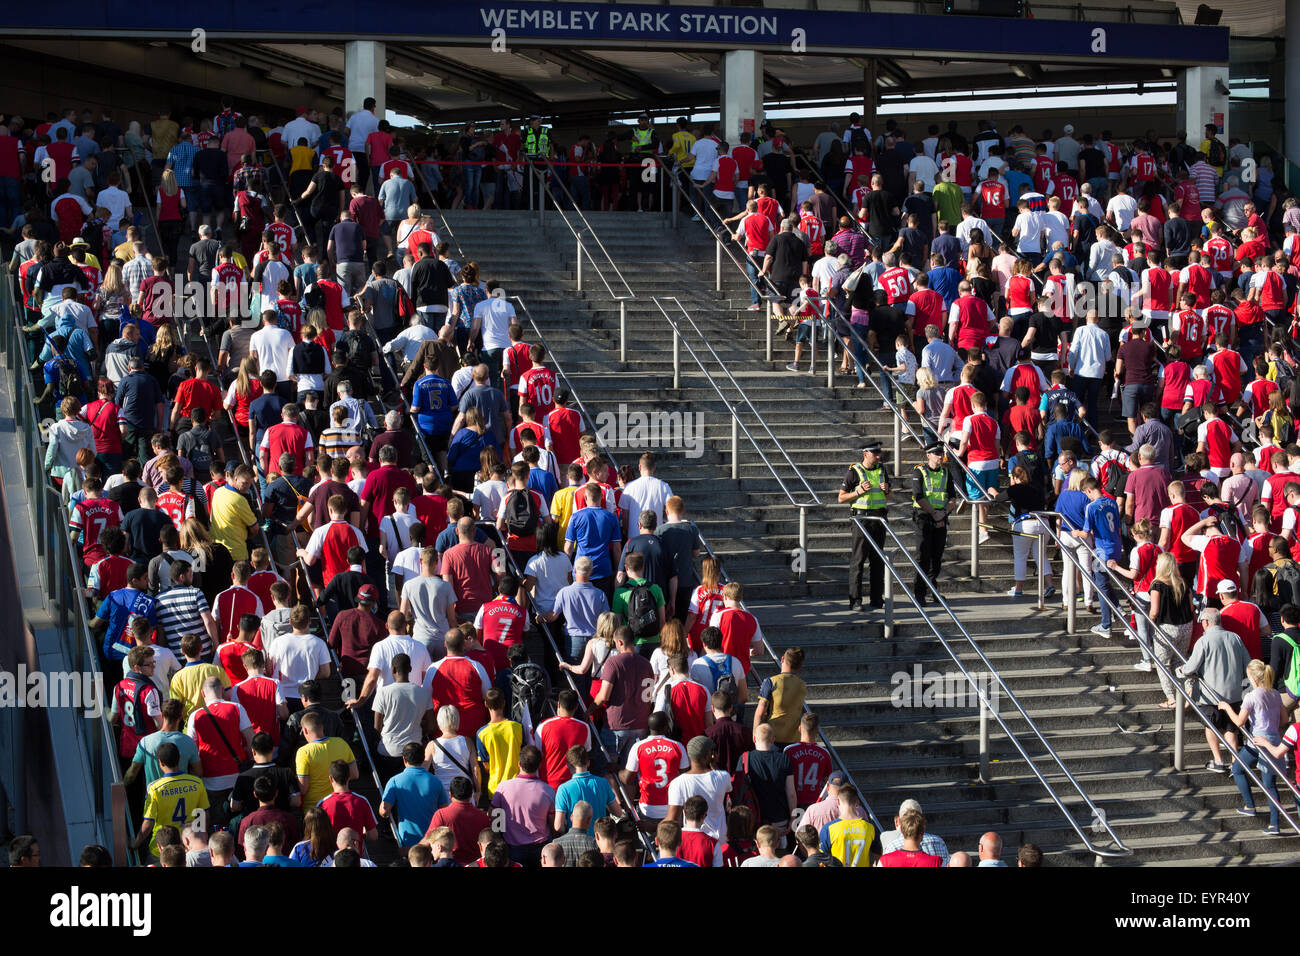 Football supporters climb steps heading into Wembley Park Tube Station after the 2015 Community Shield Arsenal v - Stock Image